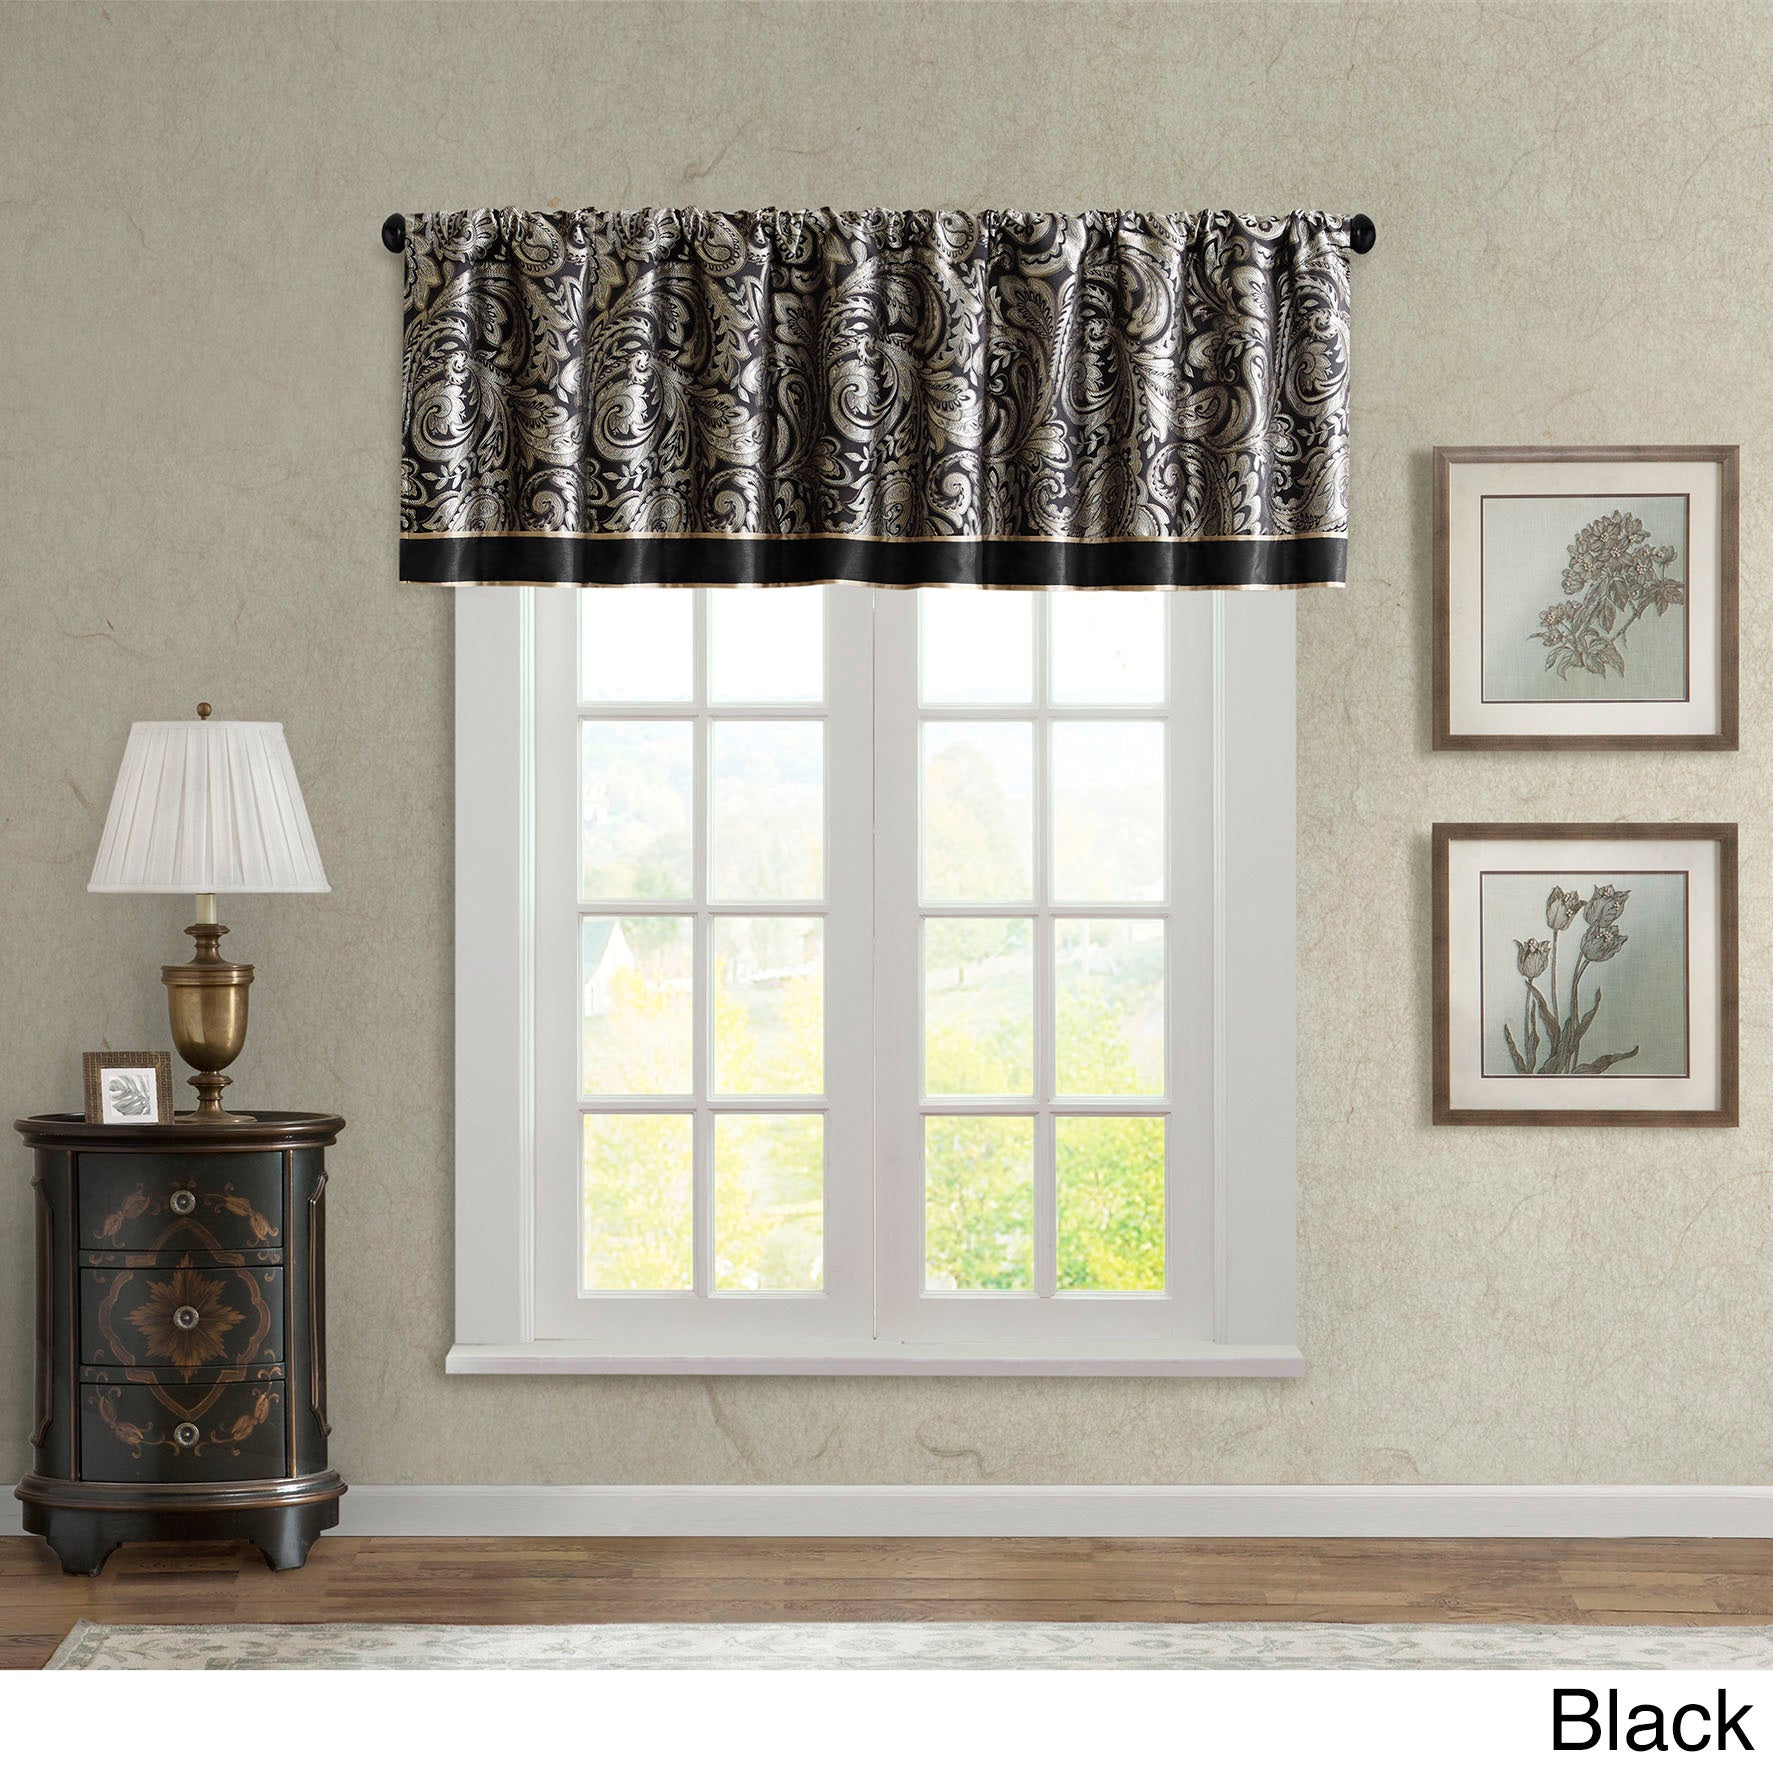 j all about brown window interior home treatments rhodes pjxqyev treatment valances valance design